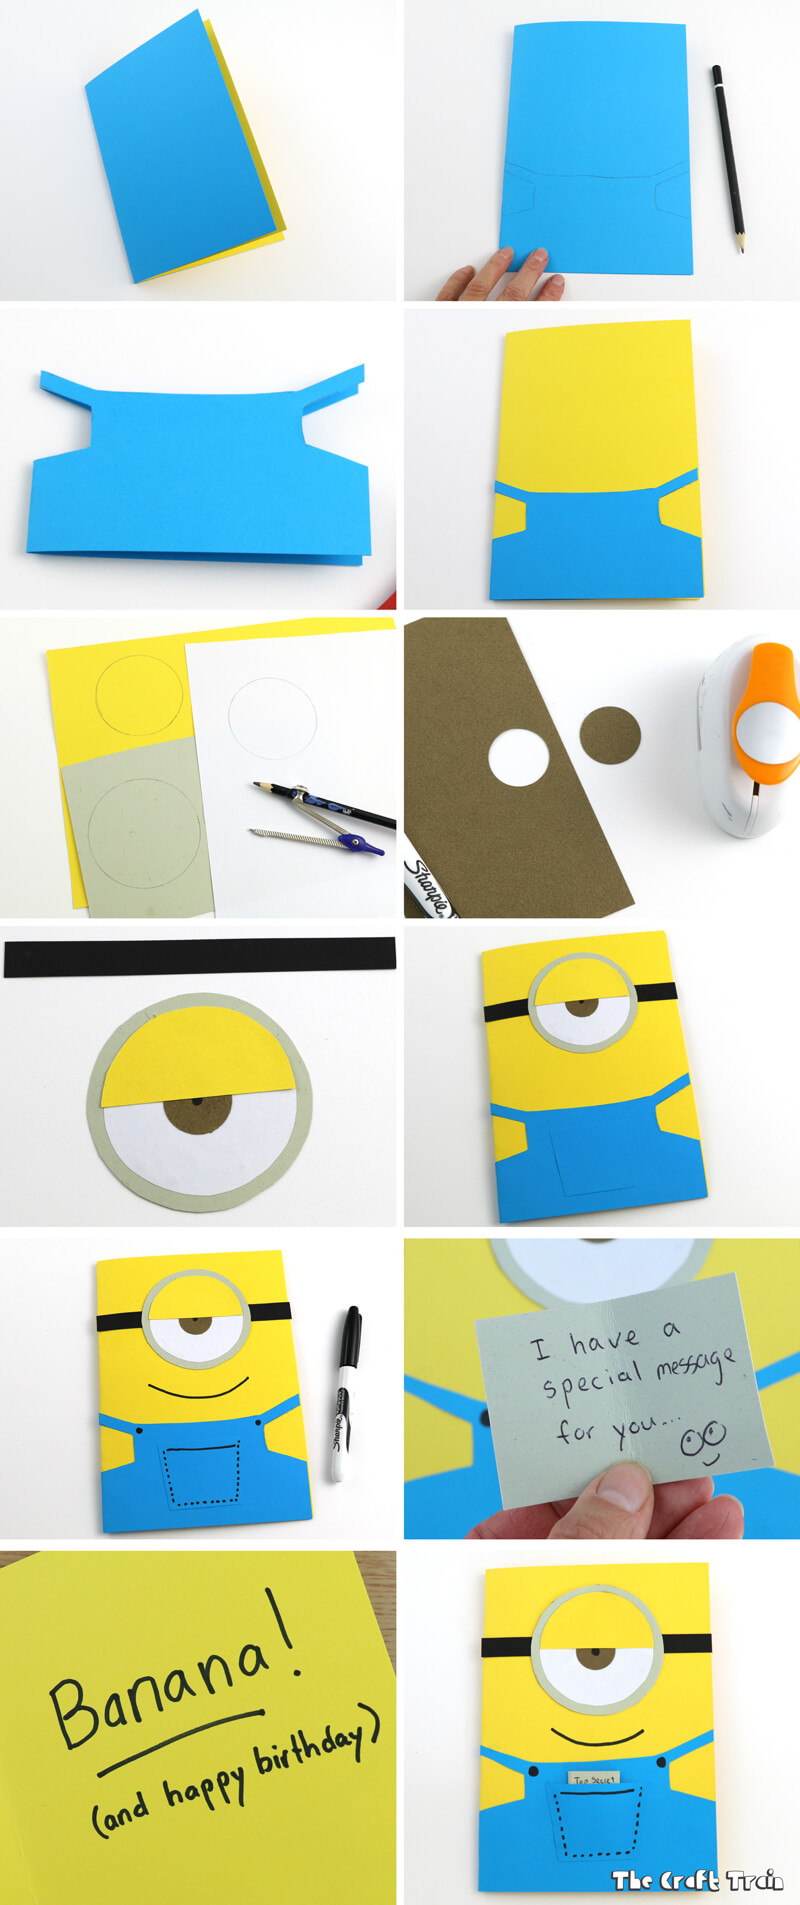 Use Construction Paper To Create A Simple Minion Greeting Card In 10 Minutes This One